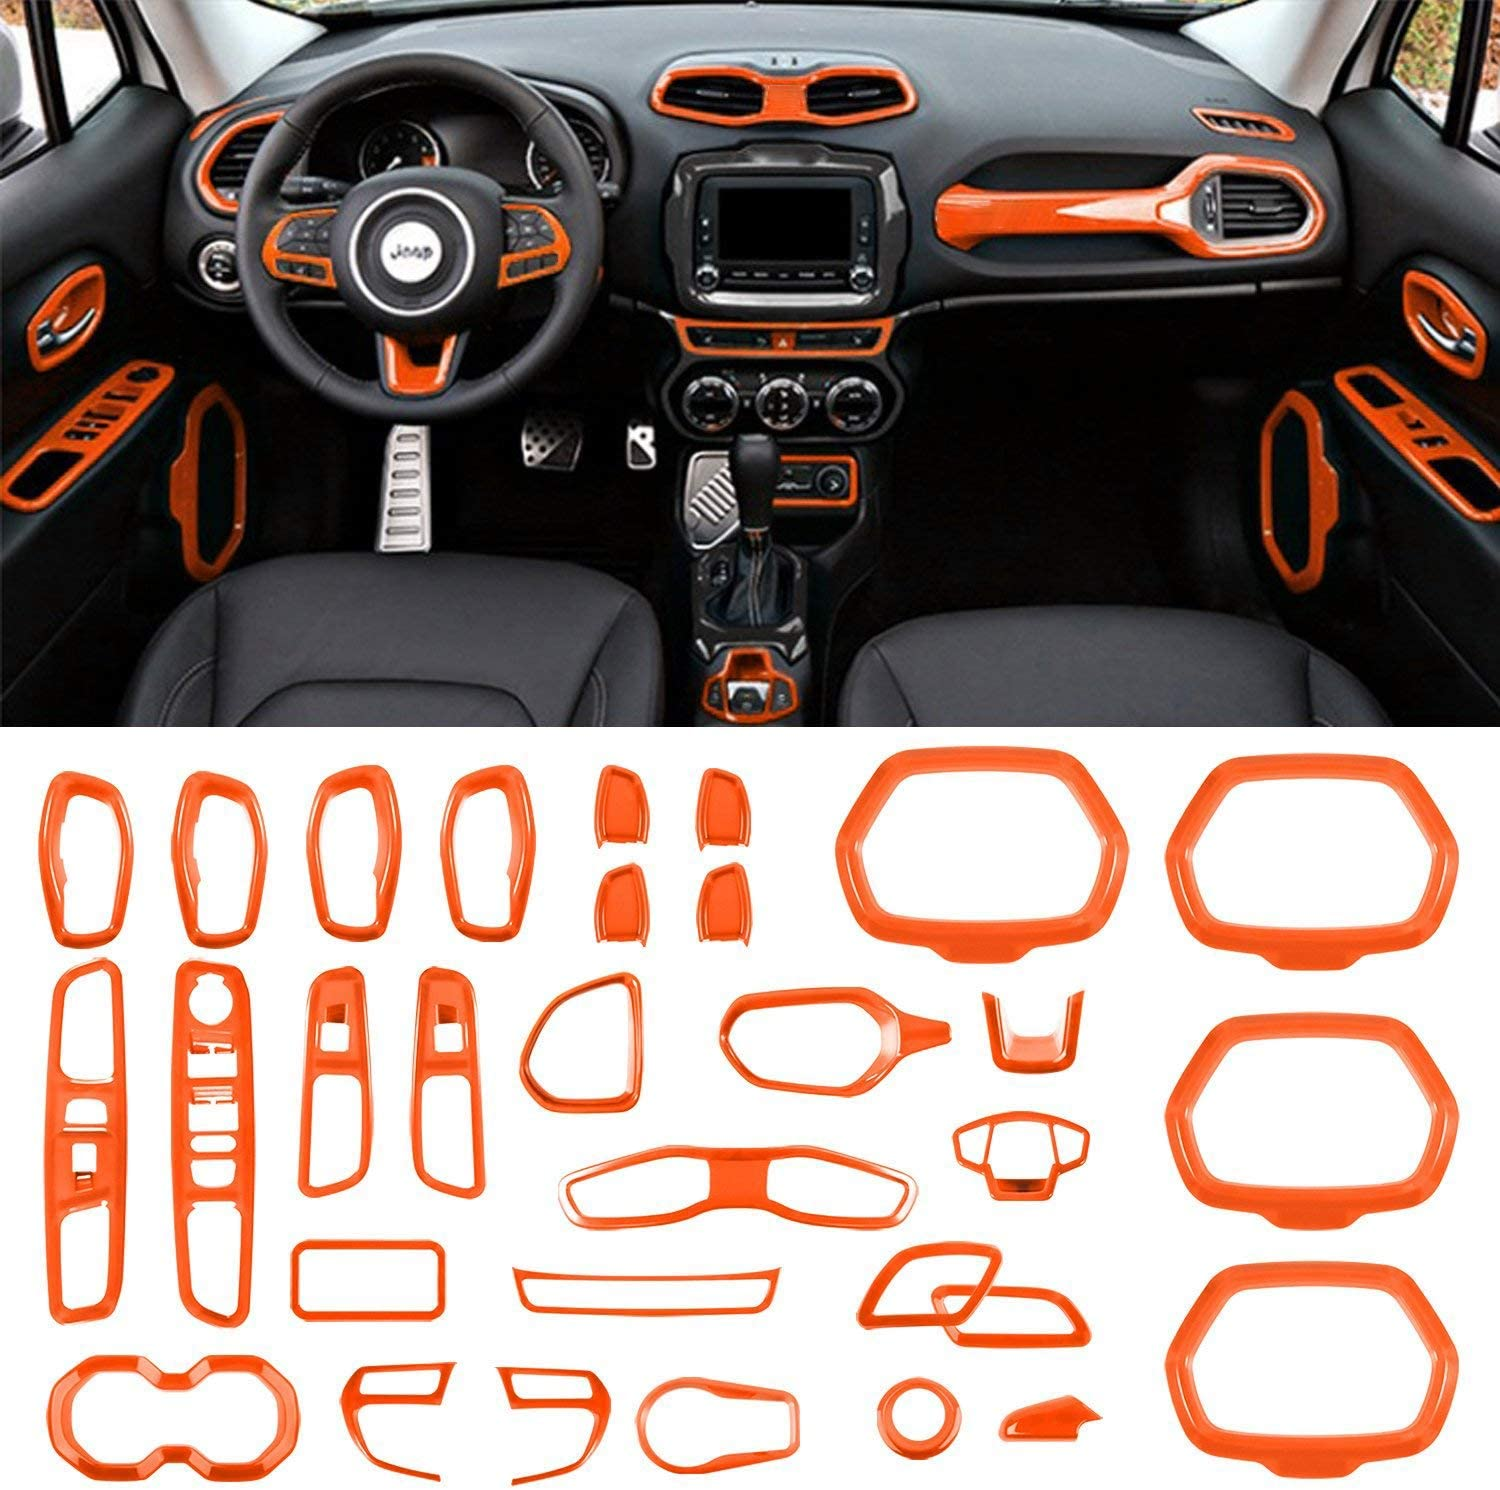 Danti Car Interior Accessories Decoration Trim Air Conditioning Vent Decoration /& Door Speaker /& Water Cup Holder /& Headlight Switch /& Window Lift Button Covers for Jeep Renegade 2015-2020 Black